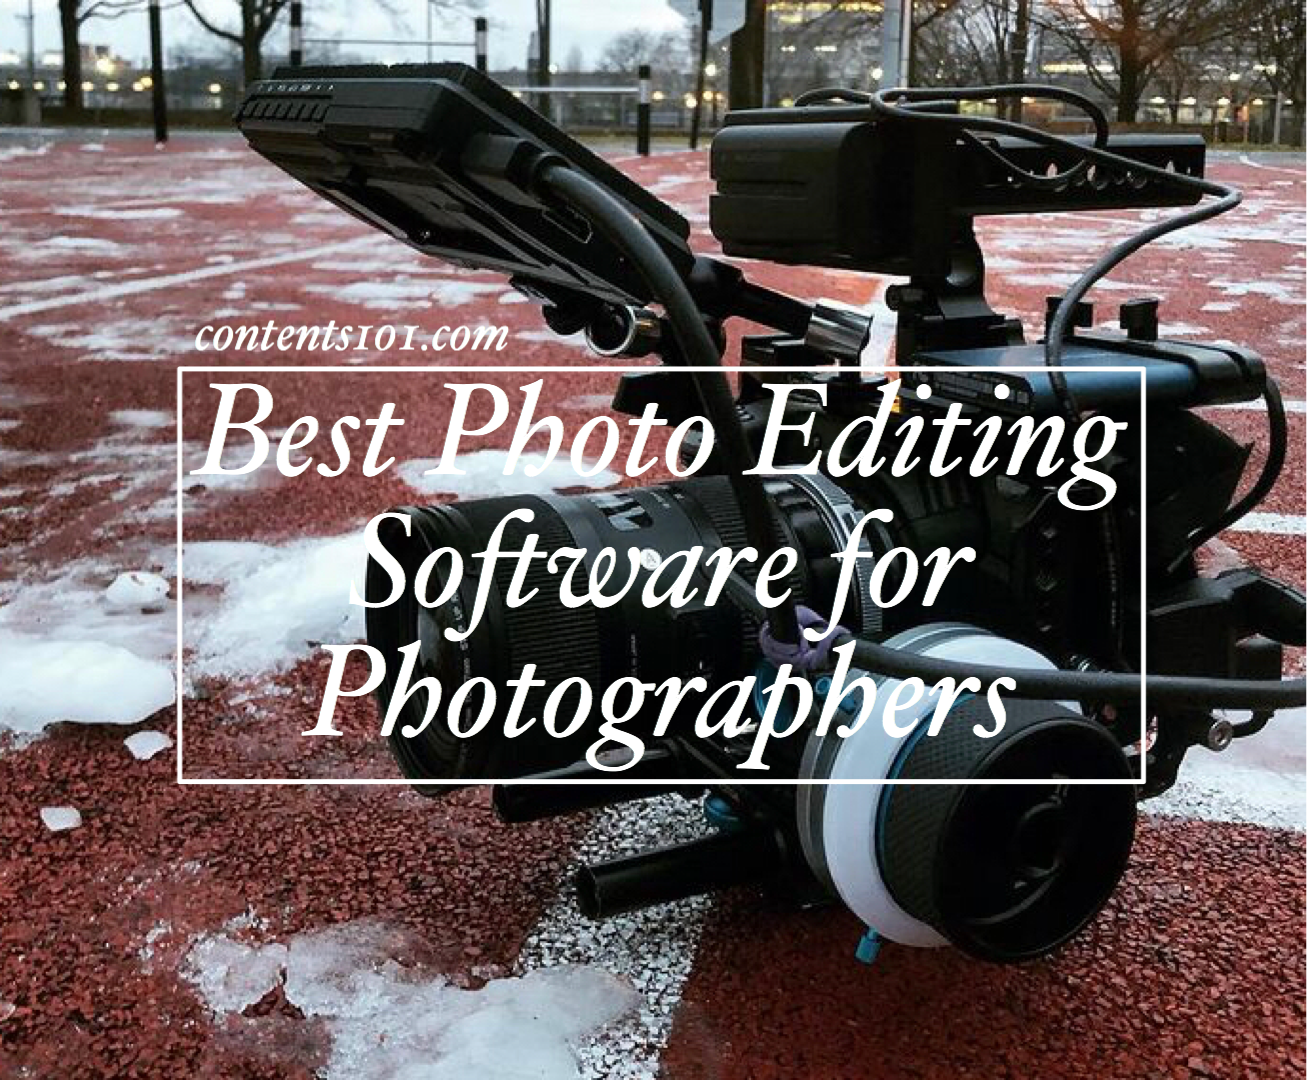 Top 5 Best Photo Editing Software for Photographers